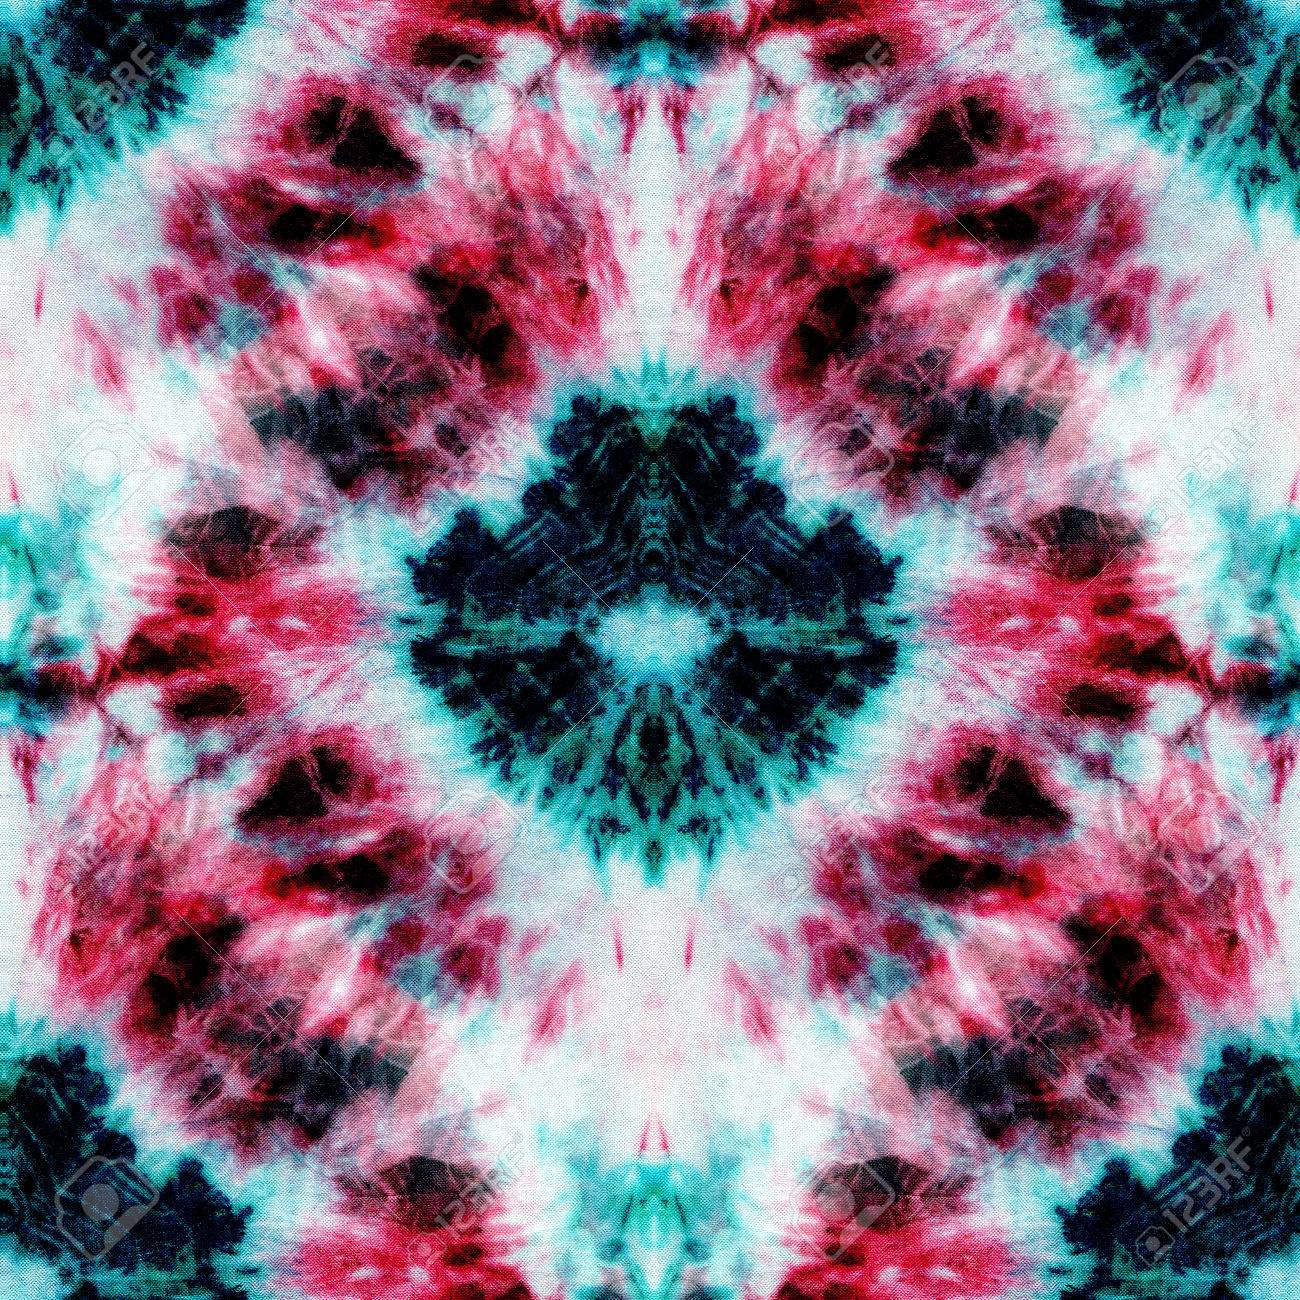 19b565a2406a Seamless tie-dye pattern of green, red and black color on white silk.